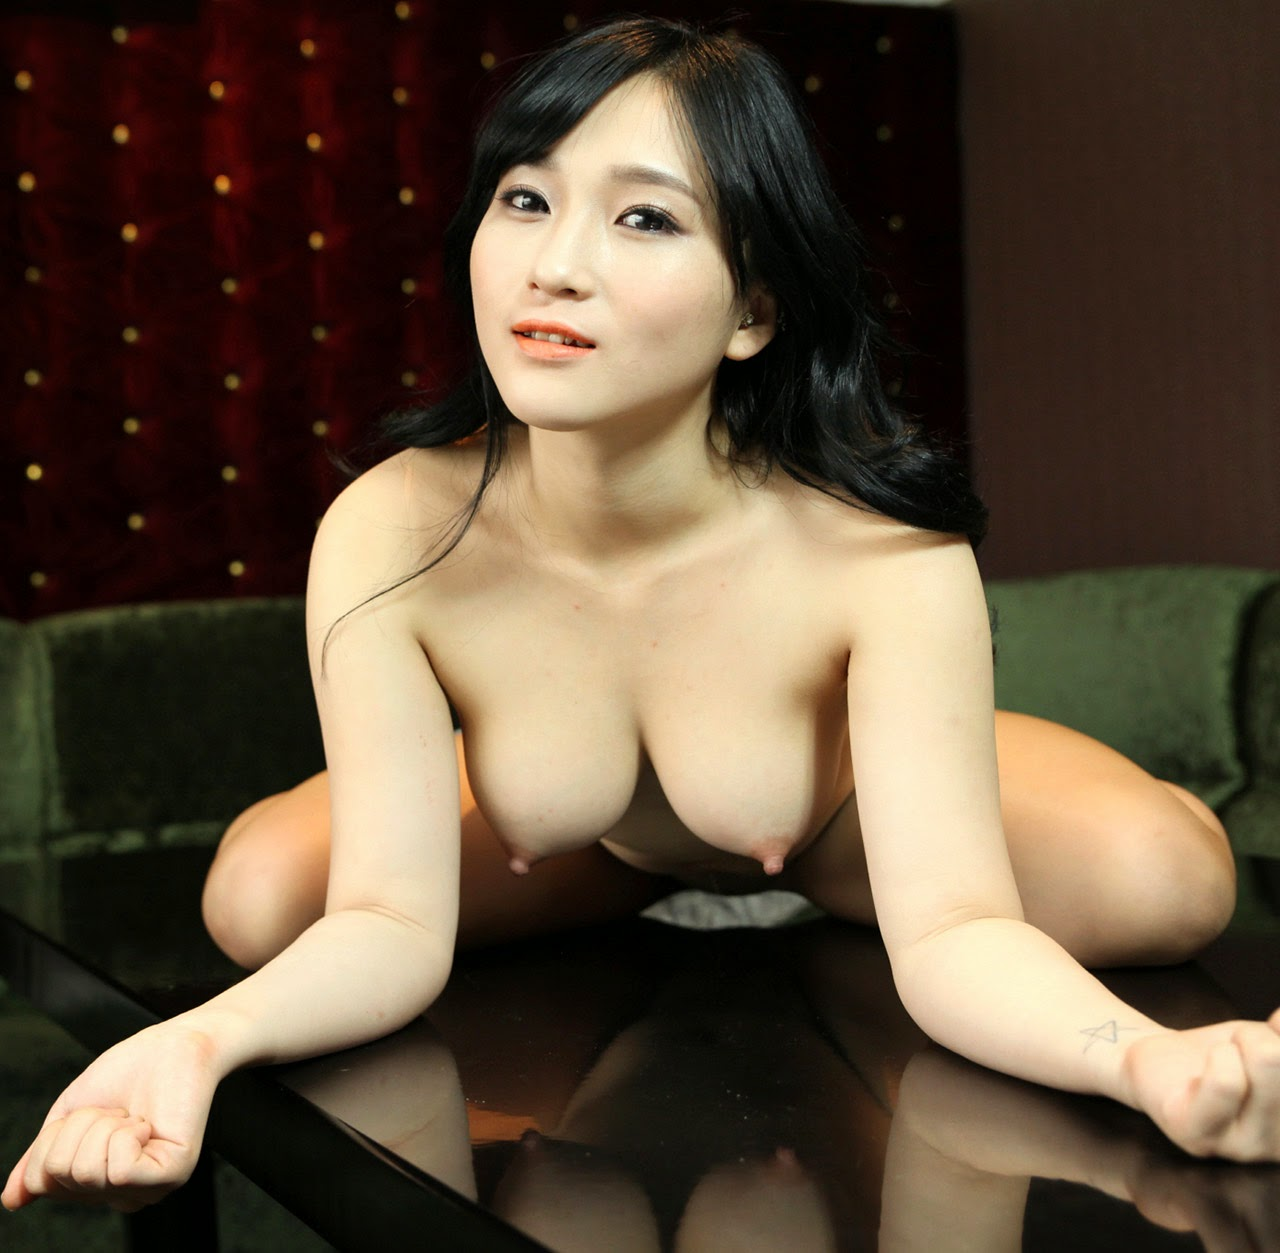 nude Korean hot photos